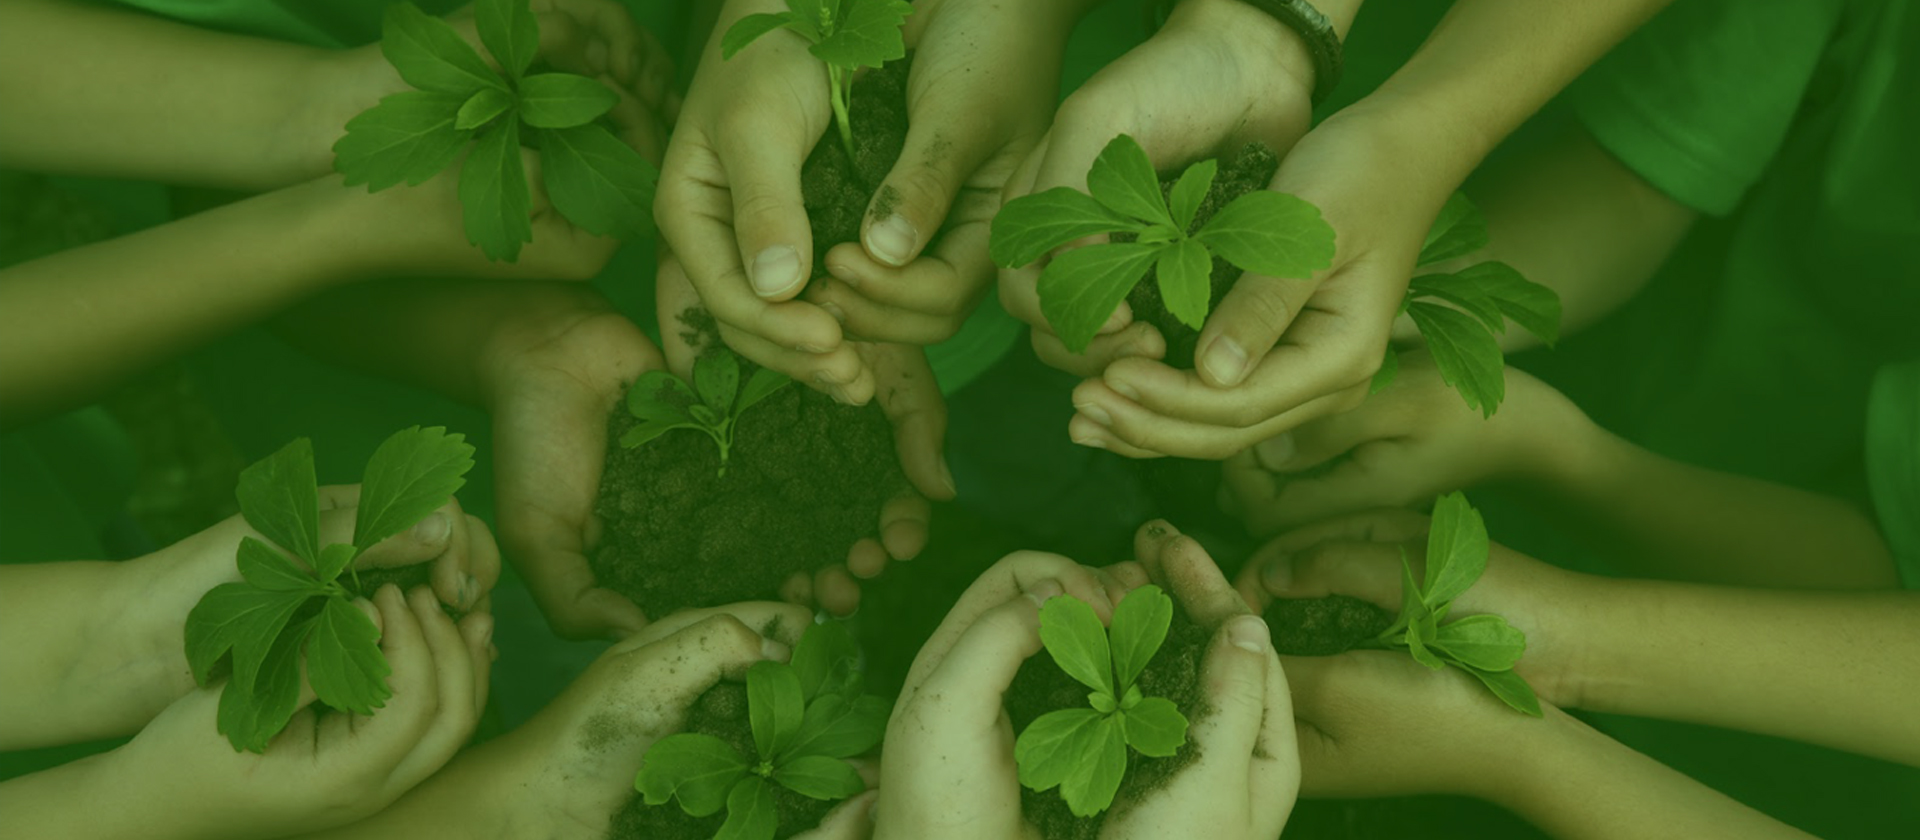 How can your business play a part in protecting the Environment?